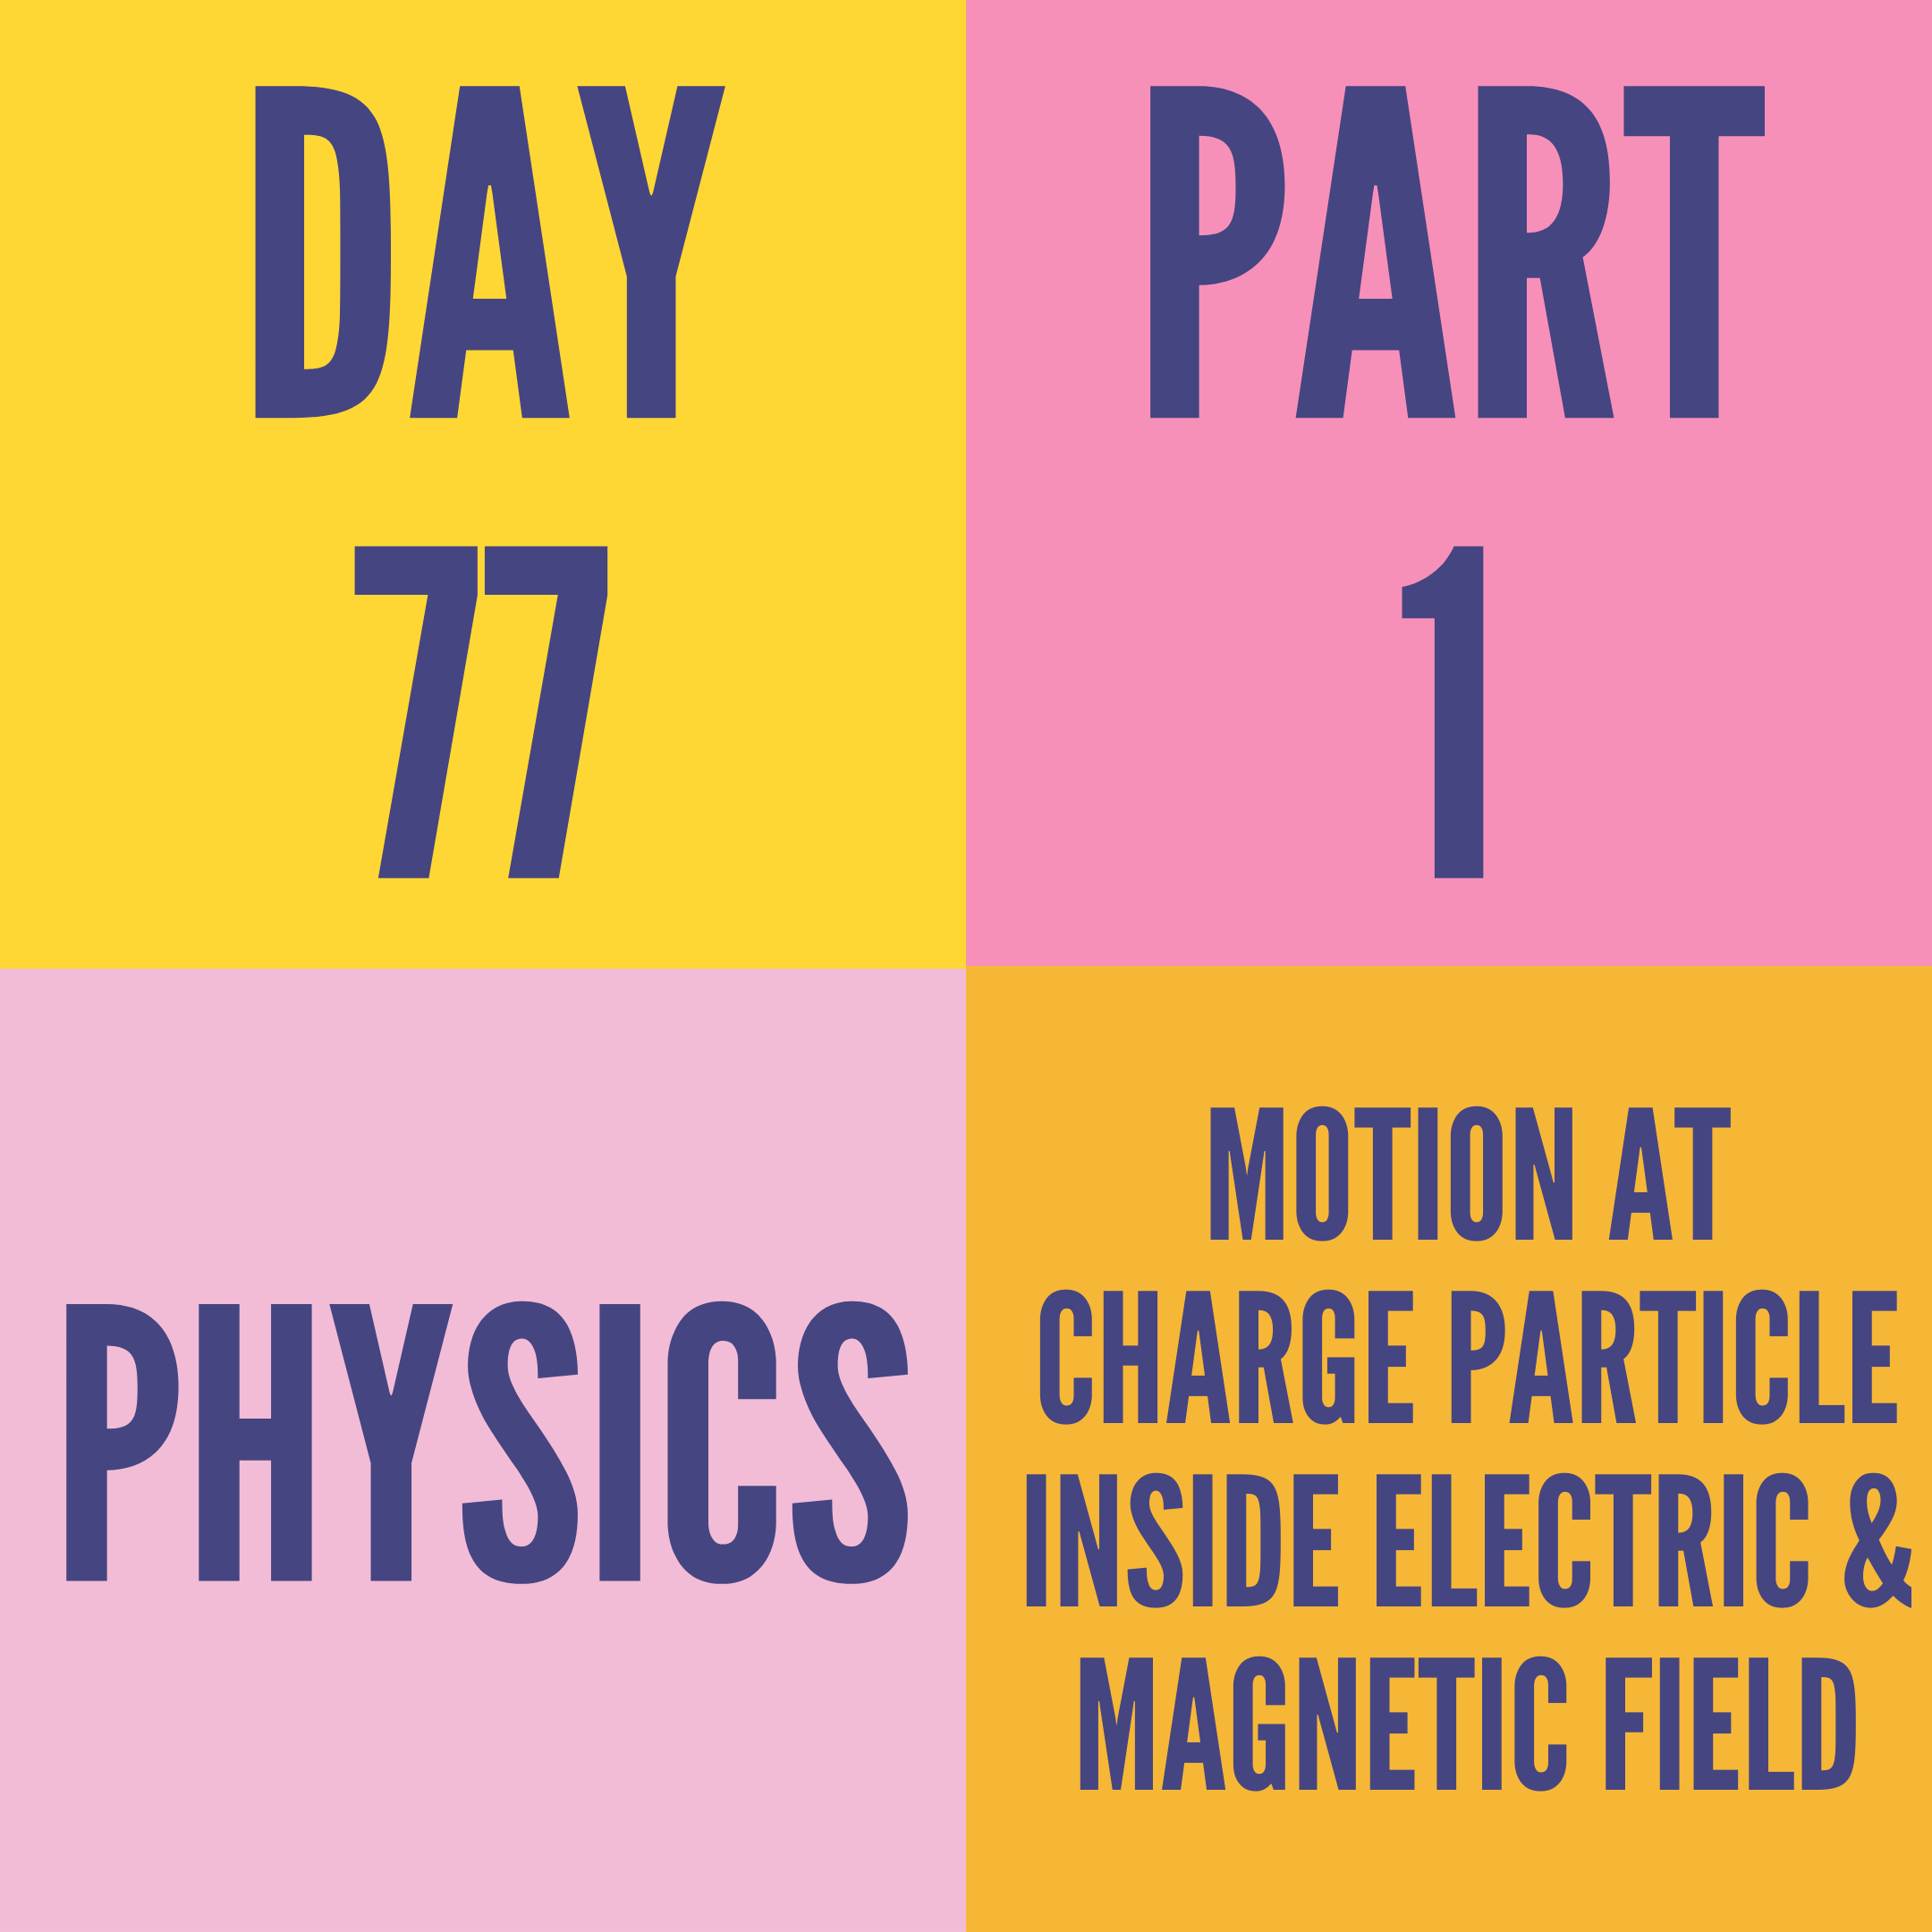 DAY-77 PART-1 MOTION AT CHARGE PARTICLE INSIDE ELECTRIC & MAGNETIC FIELD